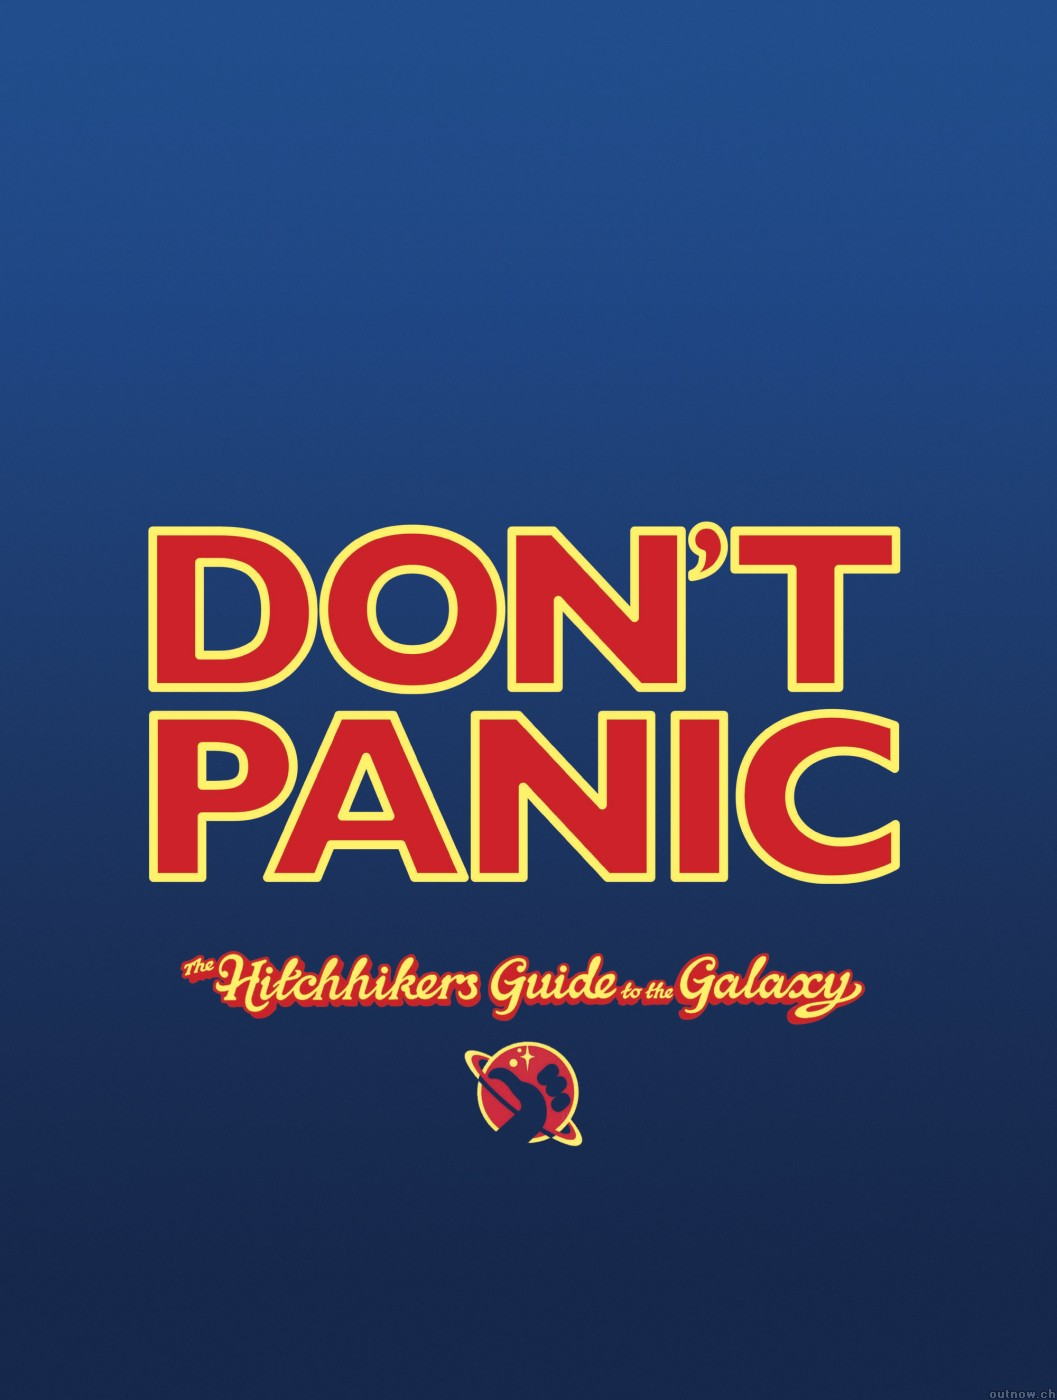 24 - The Hitchhikers Guide to the Galaxy by Douglas Adams ...